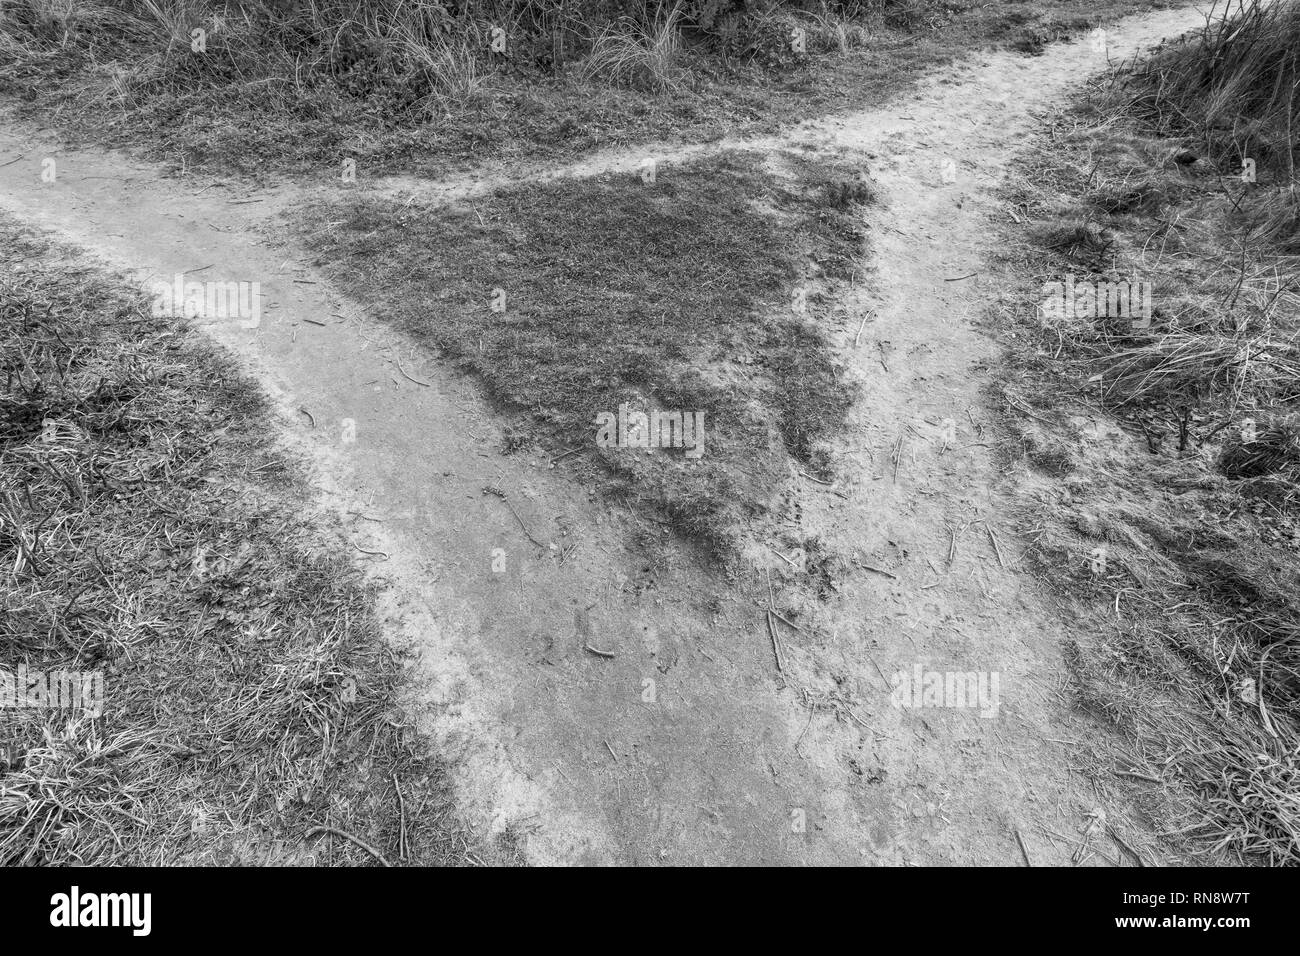 Footpaths crossing - possible metaphor for career choices, life choices, life at a cross roads, direction change, career path, multiple route concept. - Stock Image